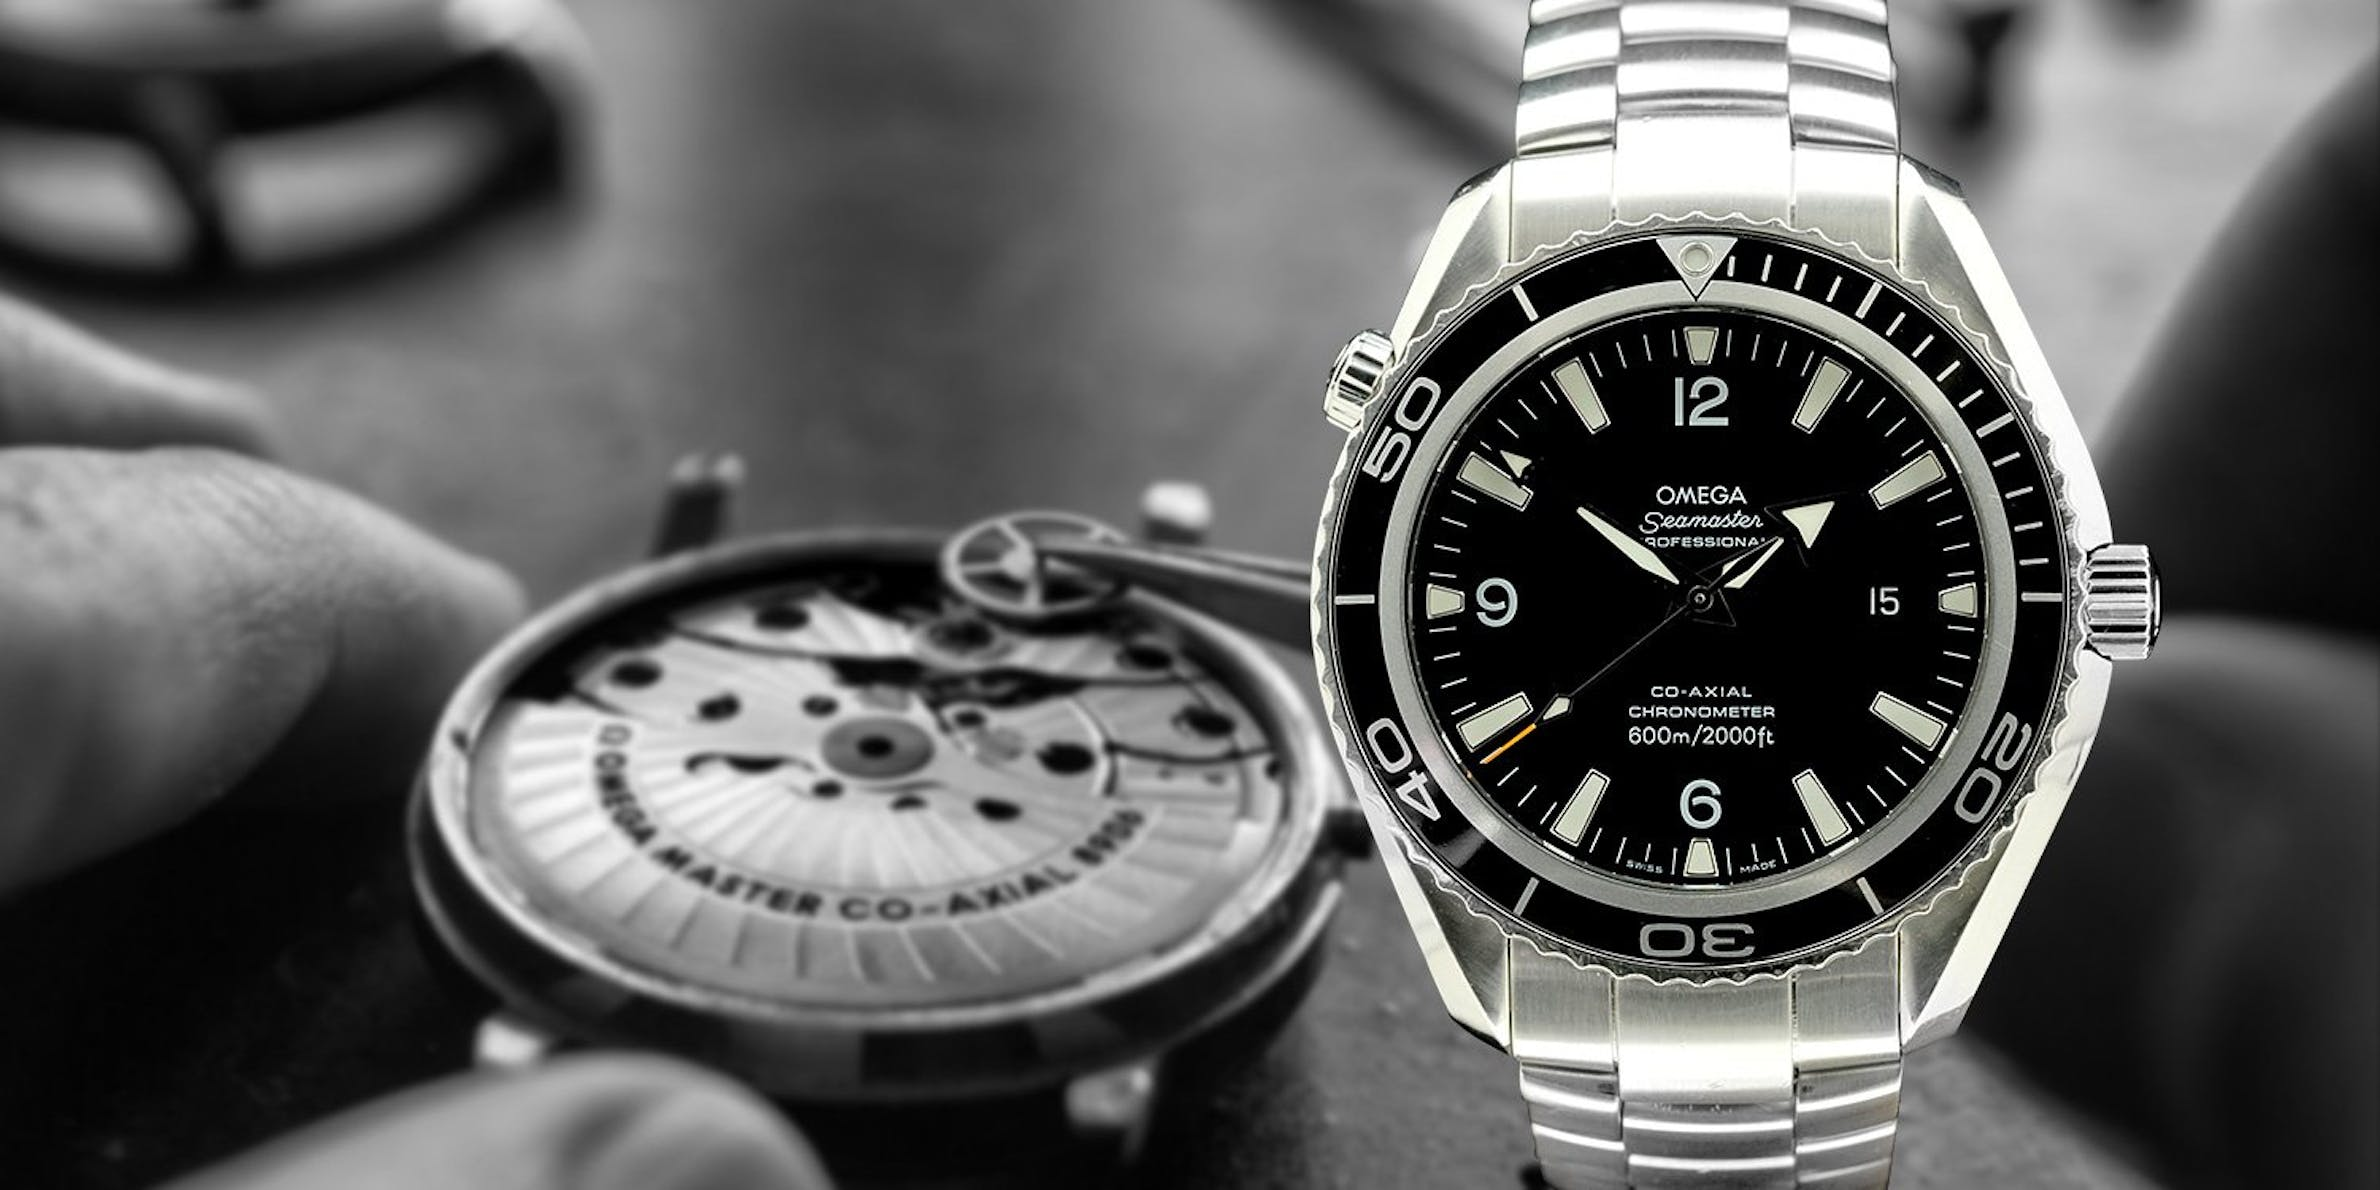 The Top 3 Watchmaking Achievements of the 21st Century